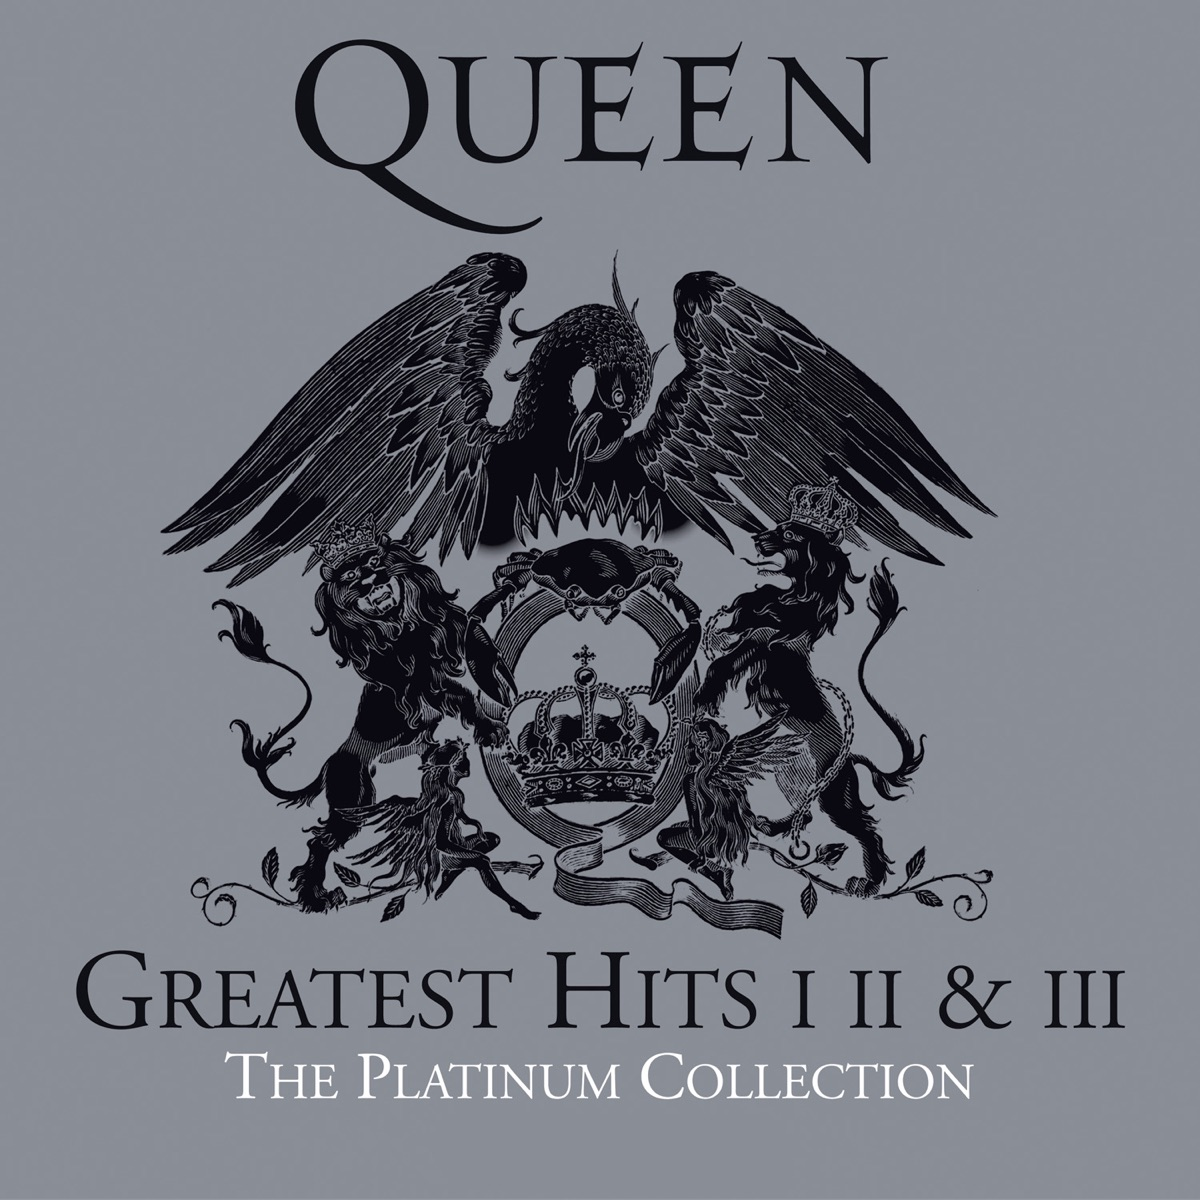 The Platinum Collection Greatest Hits I II  III Queen CD cover